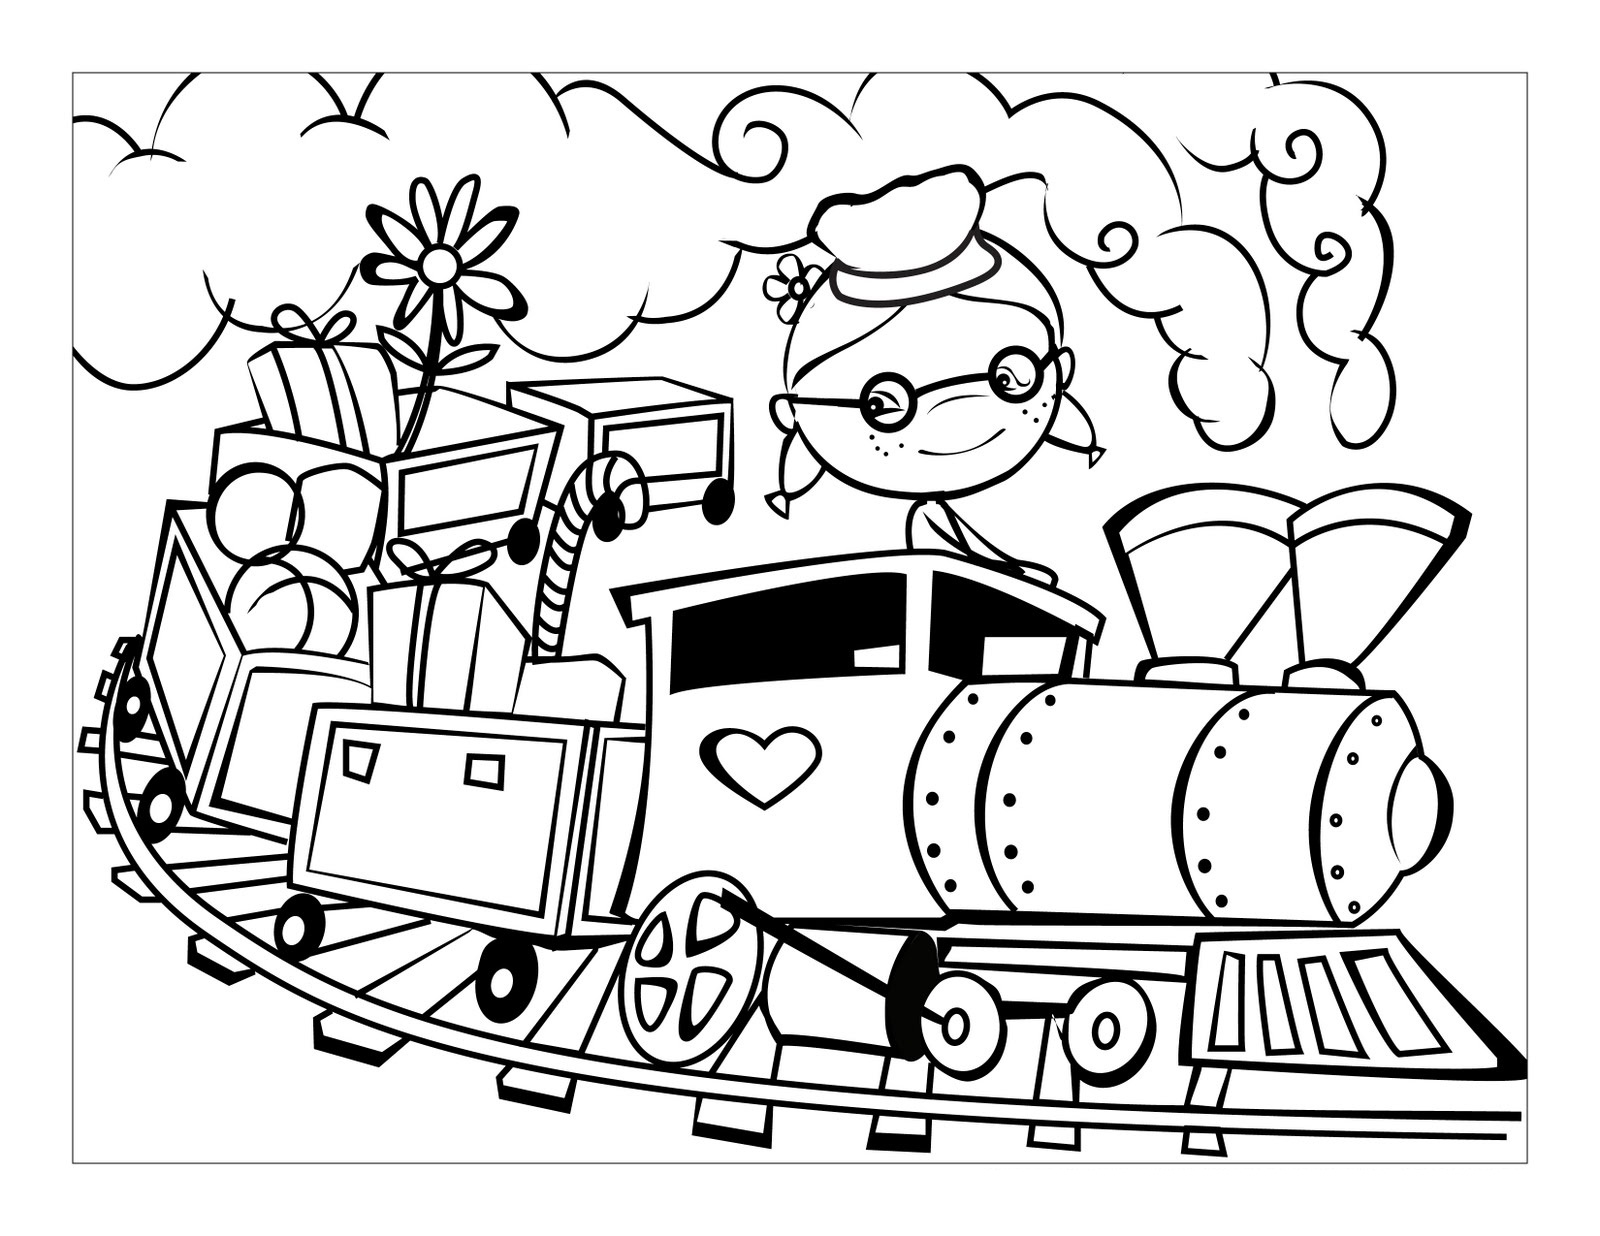 Free coloring sheets cars - Train Cars Coloring Pages